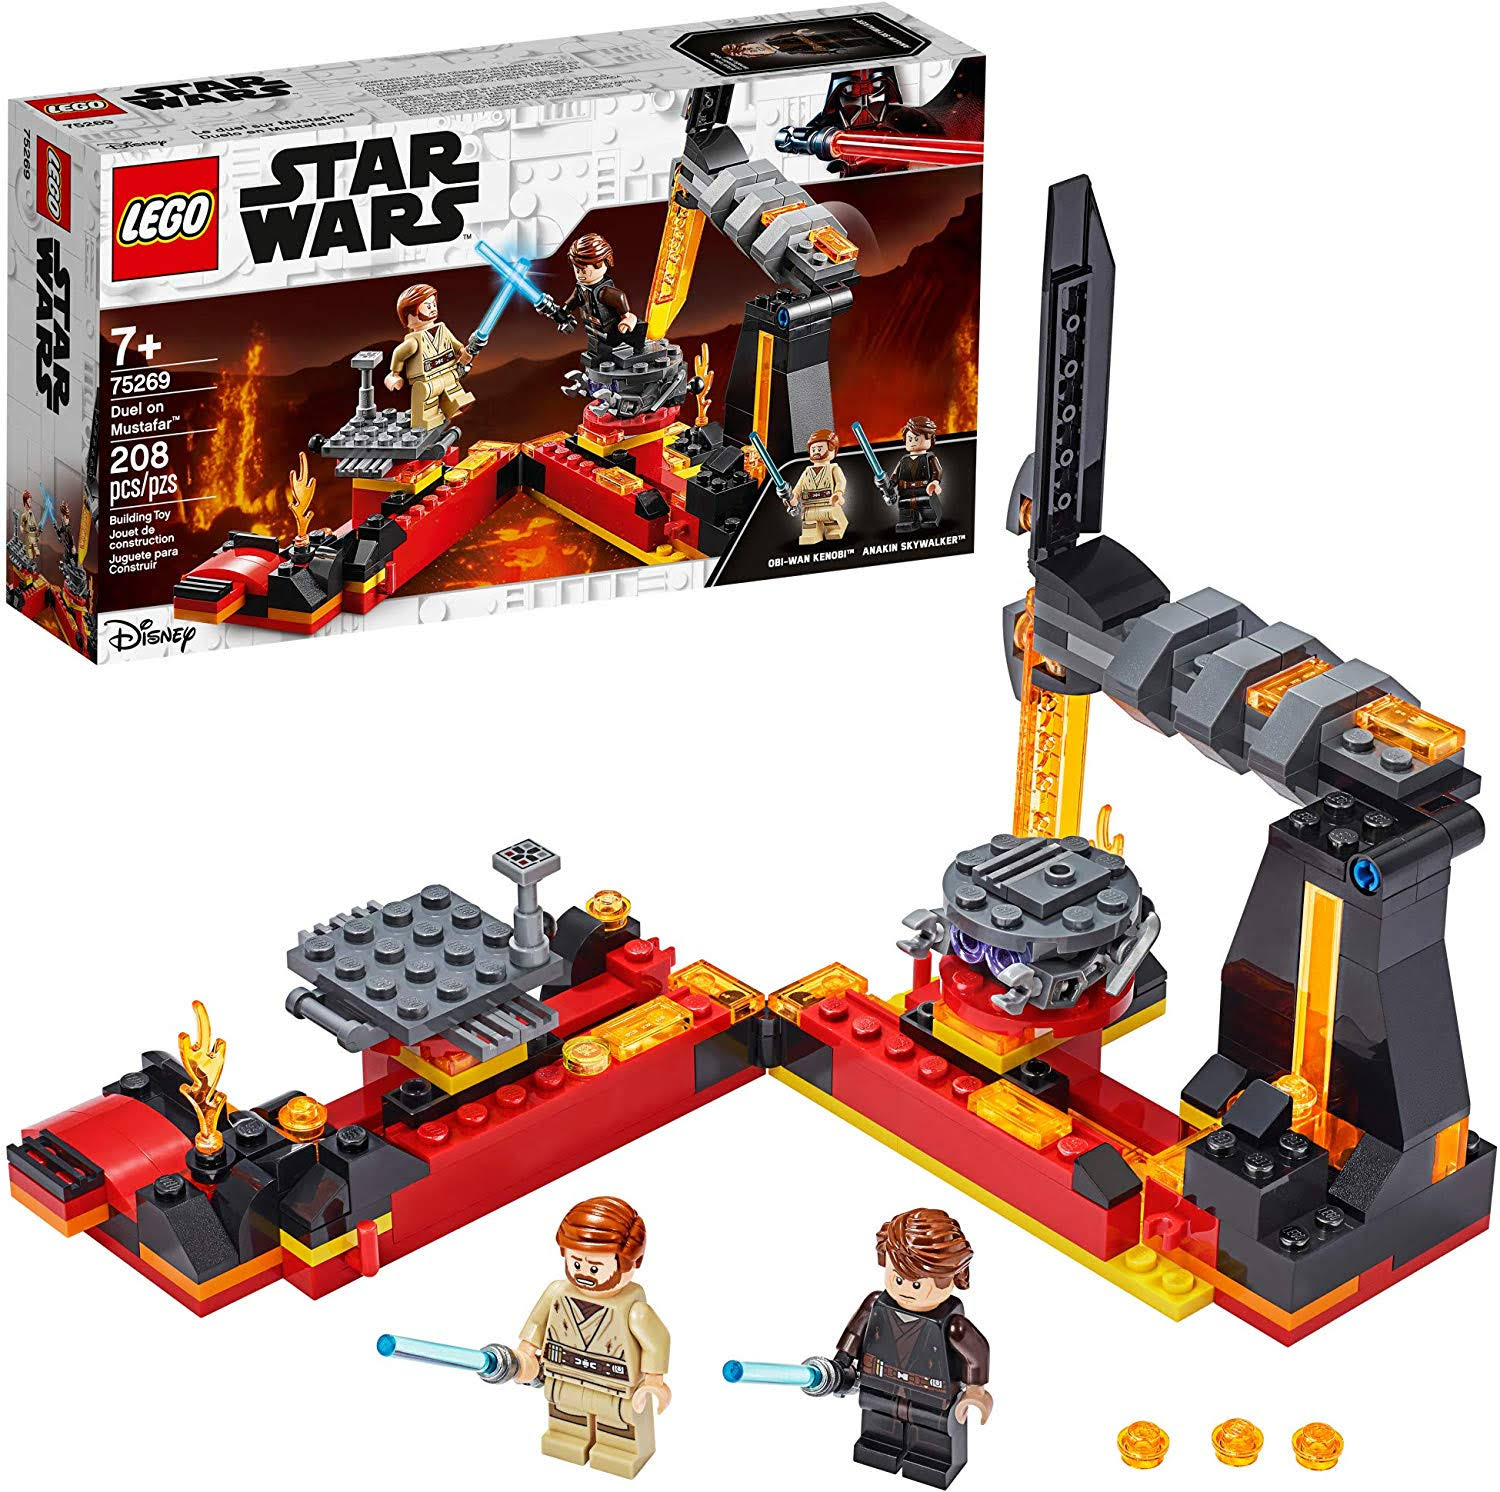 Lego Star Wars - Duel on Mustafar 75269